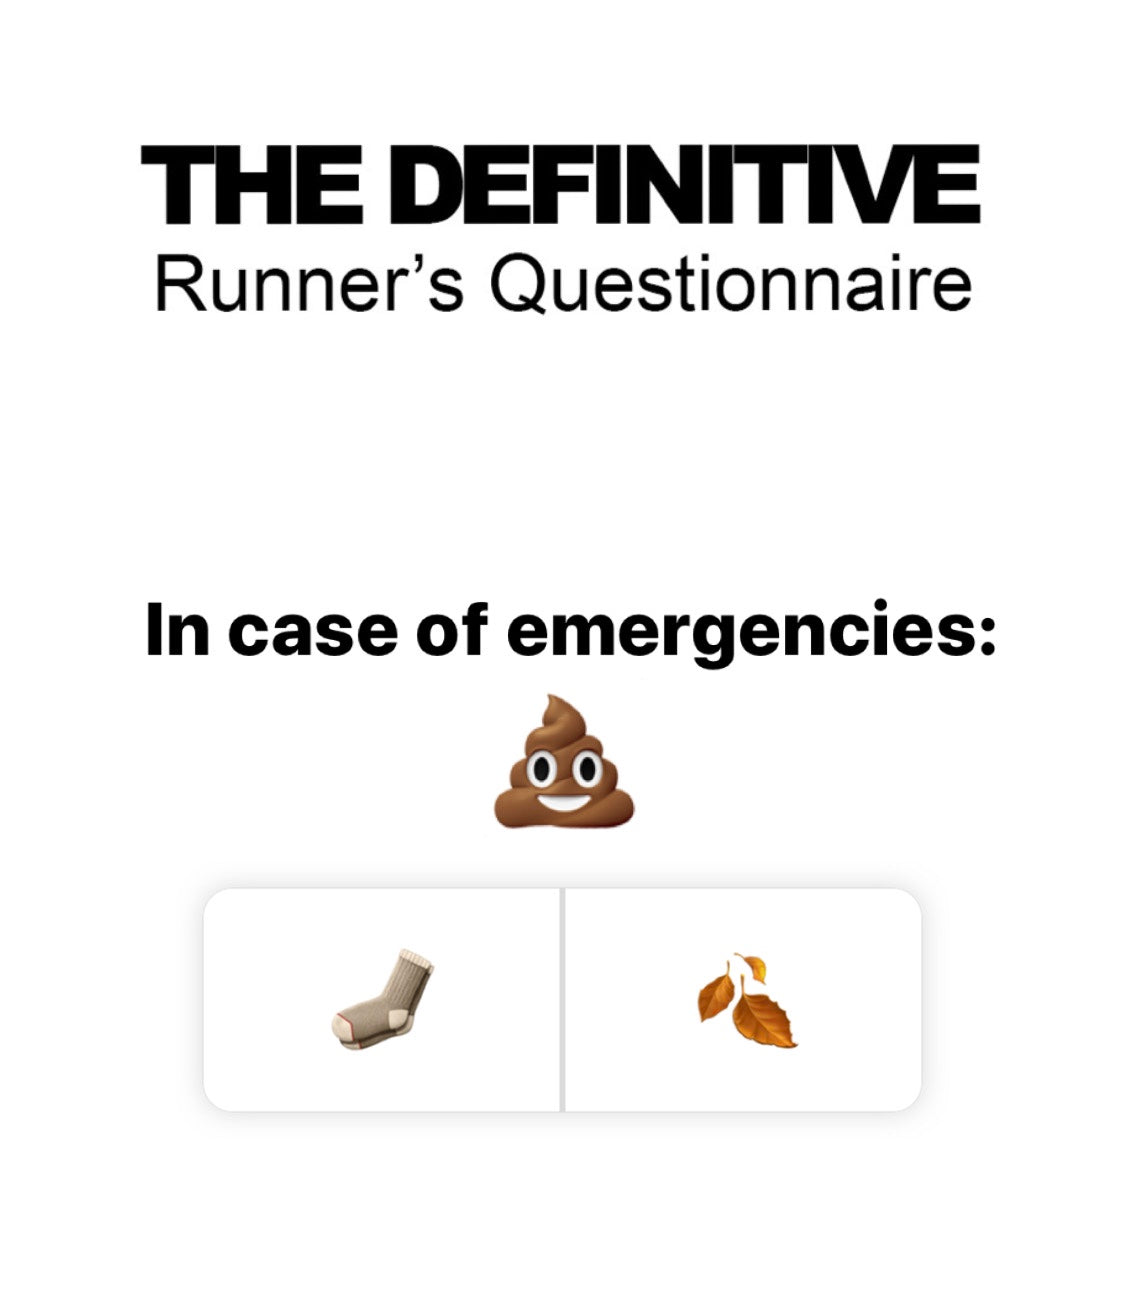 The Definitive Runner's Questionnaire